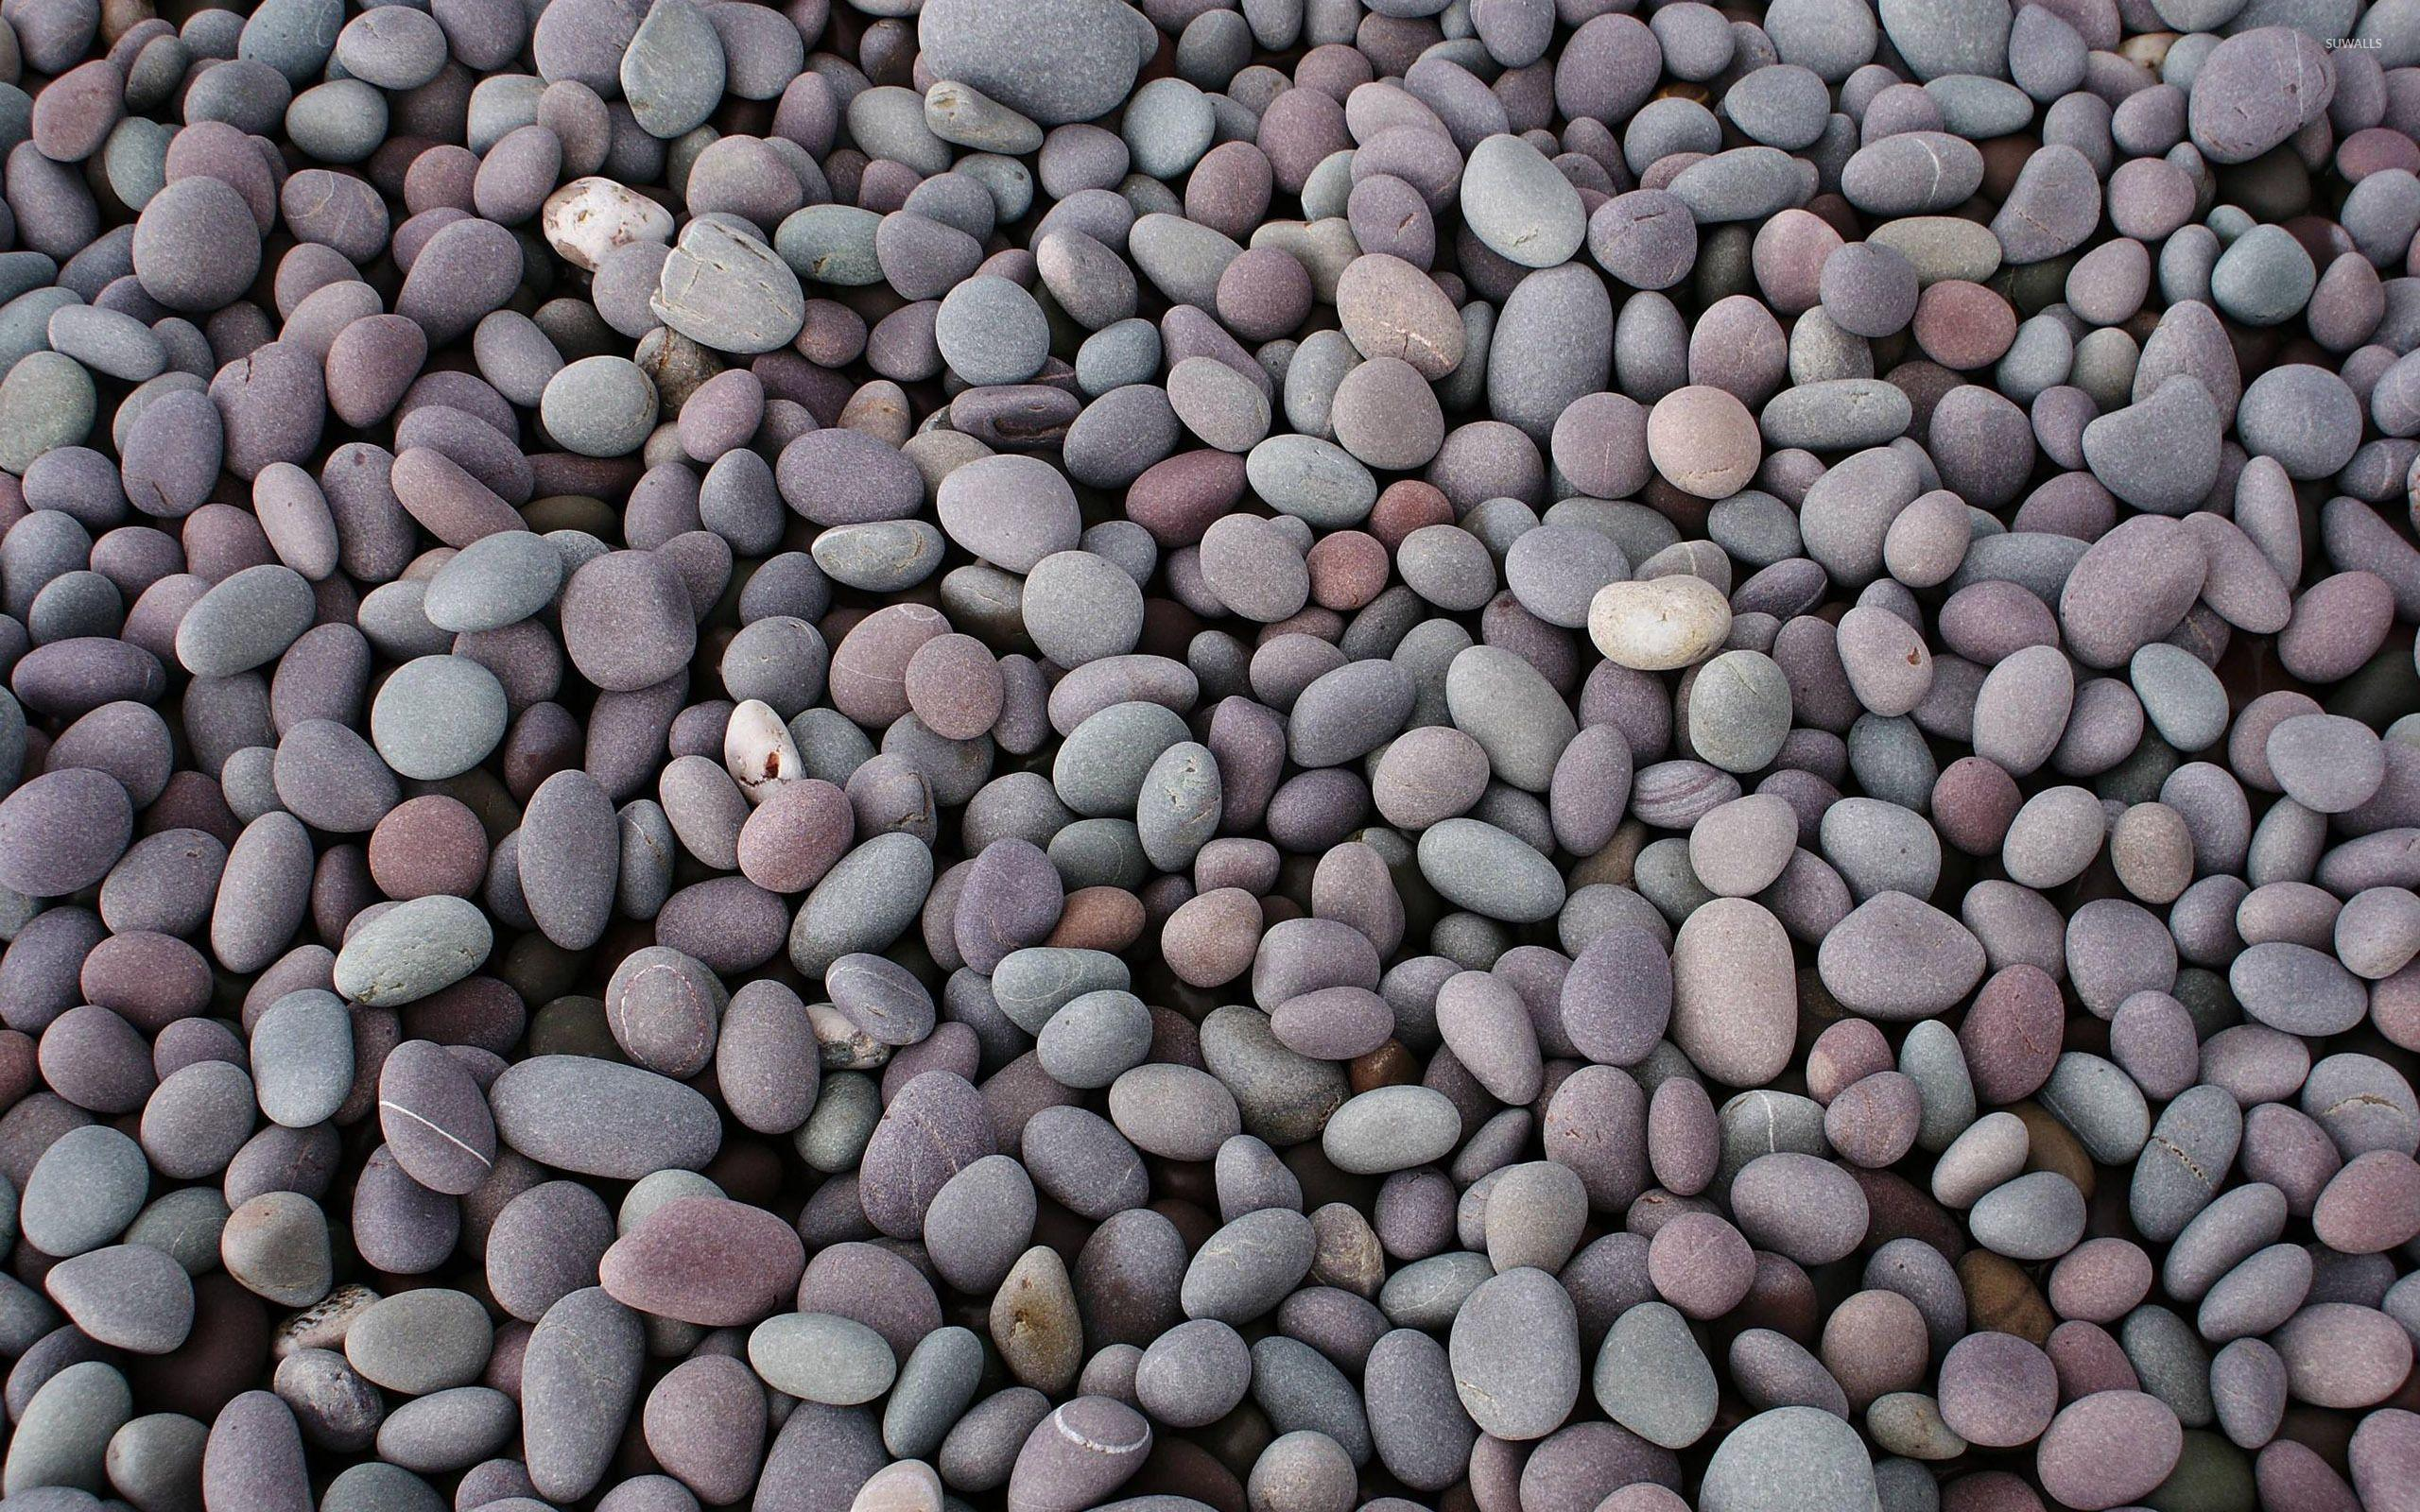 Smooth pebbles wallpaper - Photography wallpapers - #29087